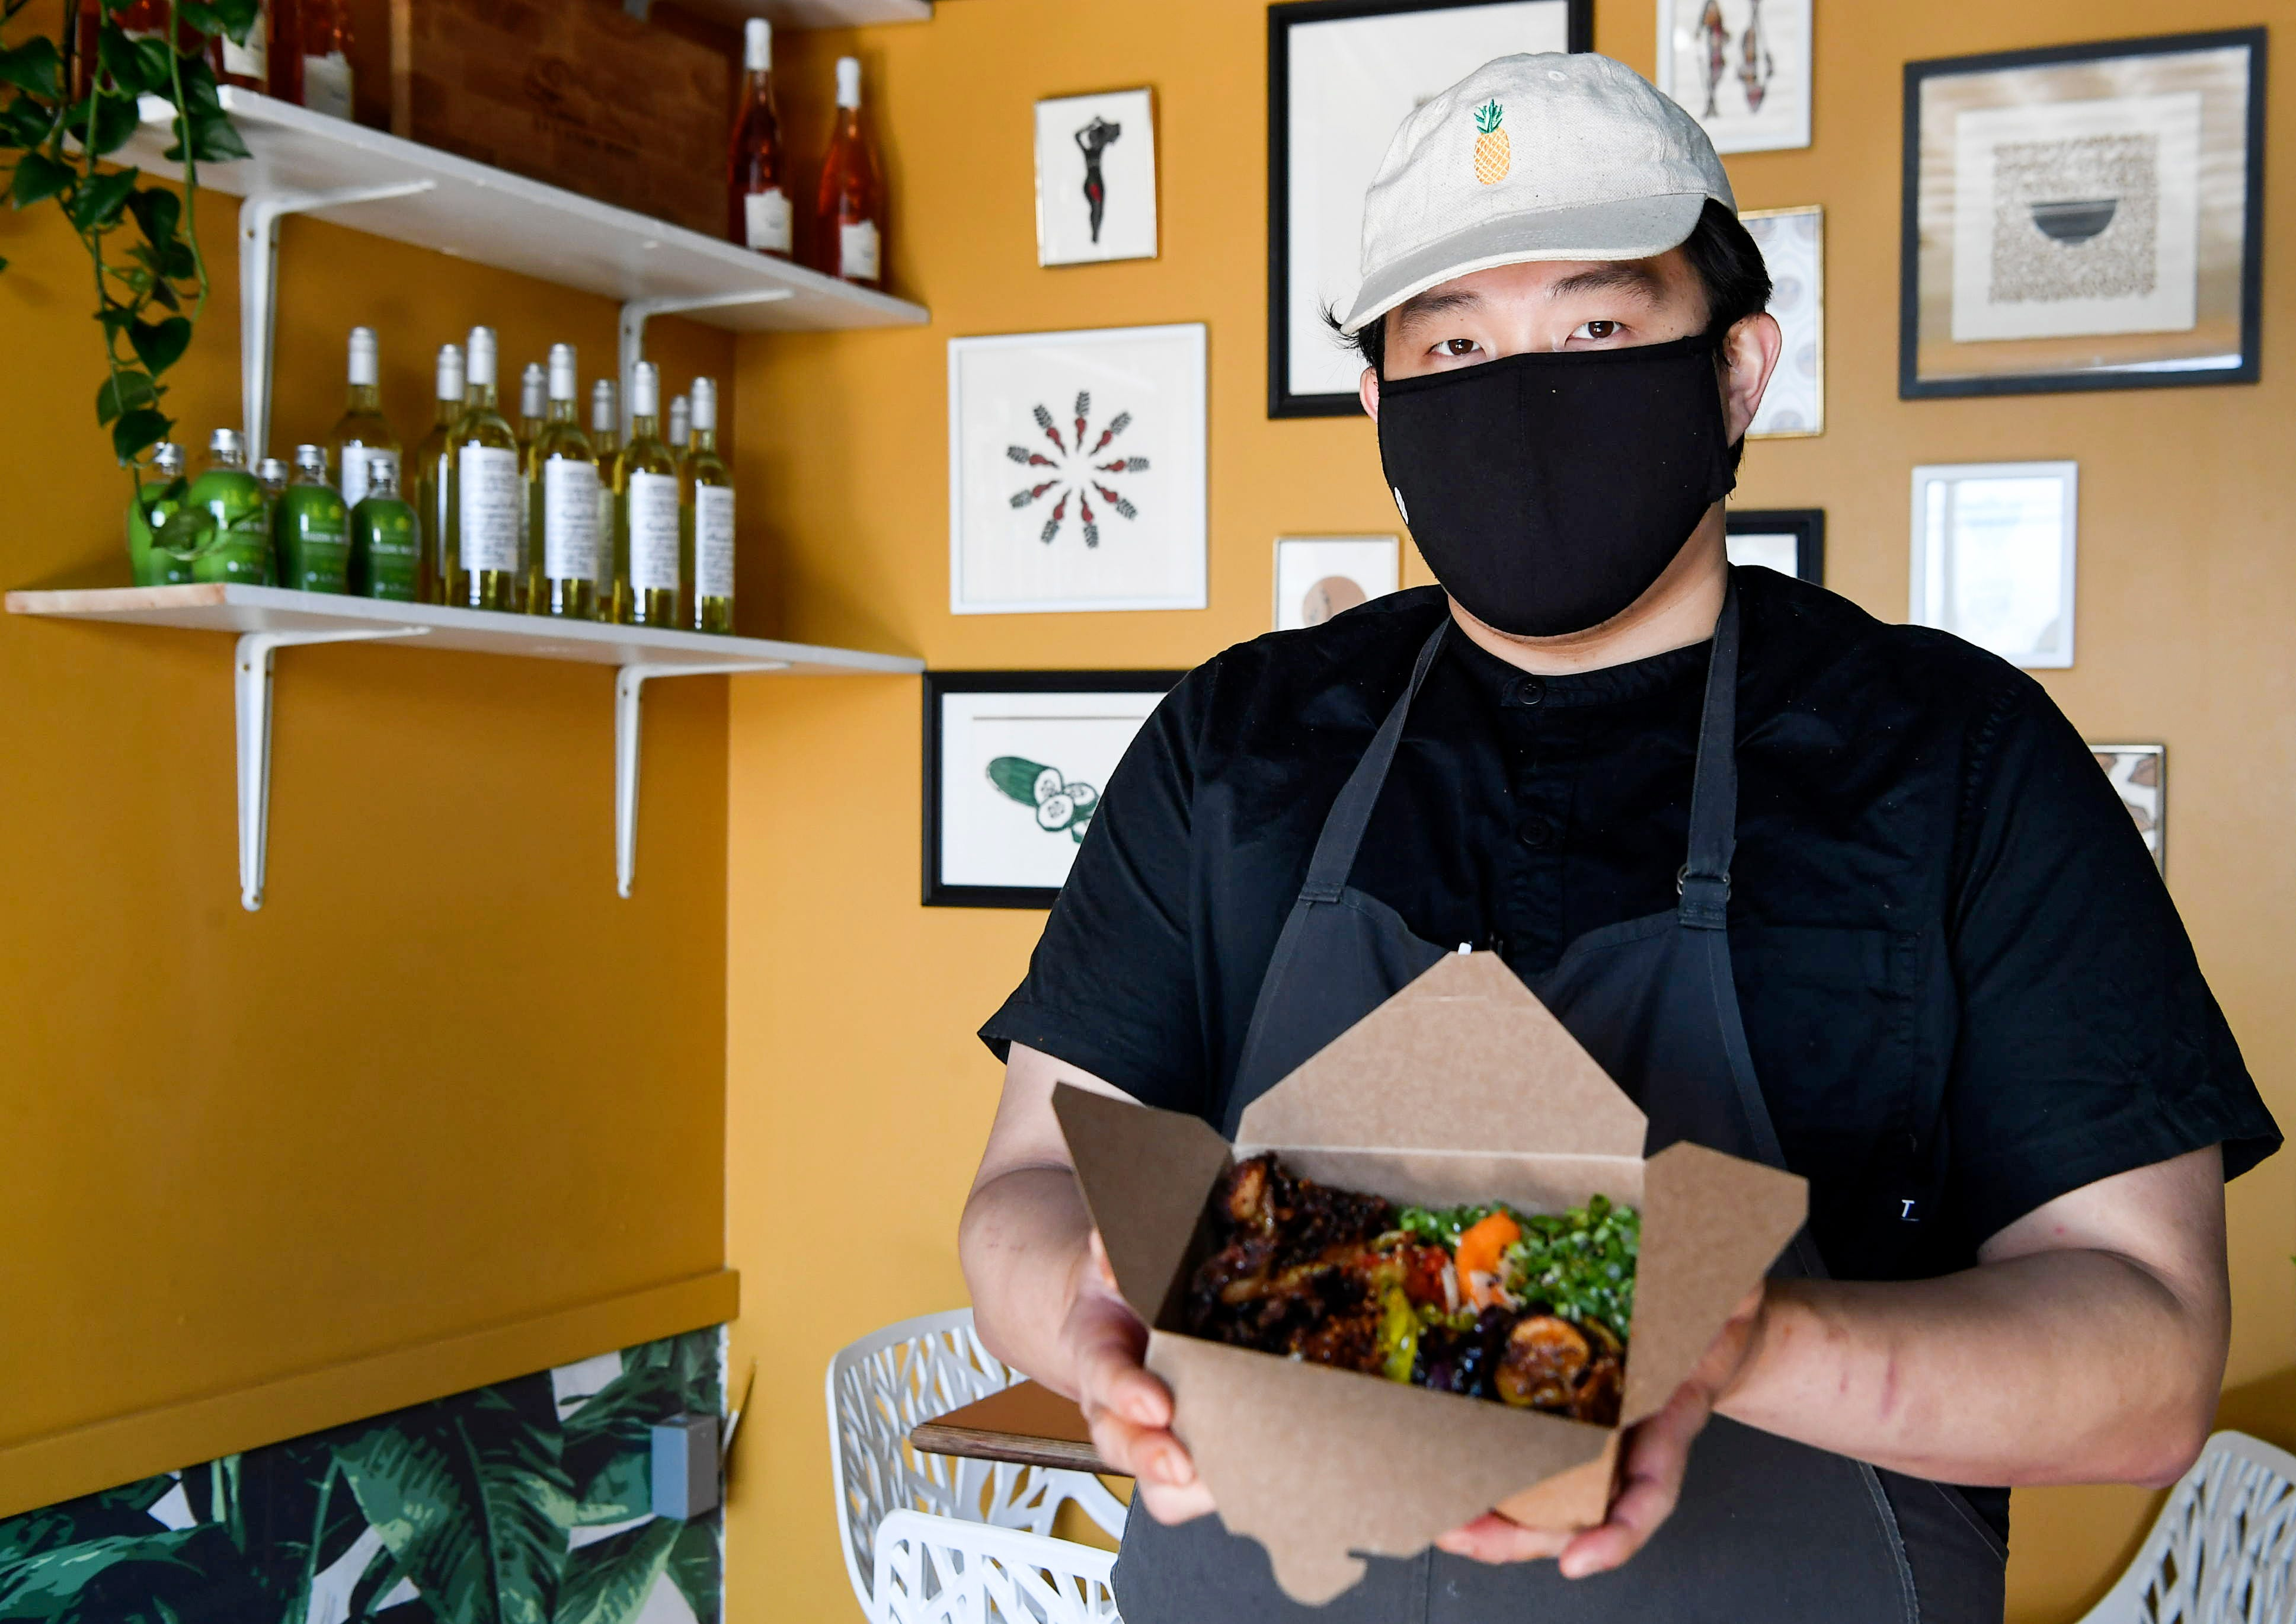 Gan Shan West chef Ray Hui holds the GSW Rice Bowl with black bean chicken, which comes with eggplant rubbed in togarashi, house pickles and kimchi, sweet soy, Japanese mayo, chili oil and peanuts.